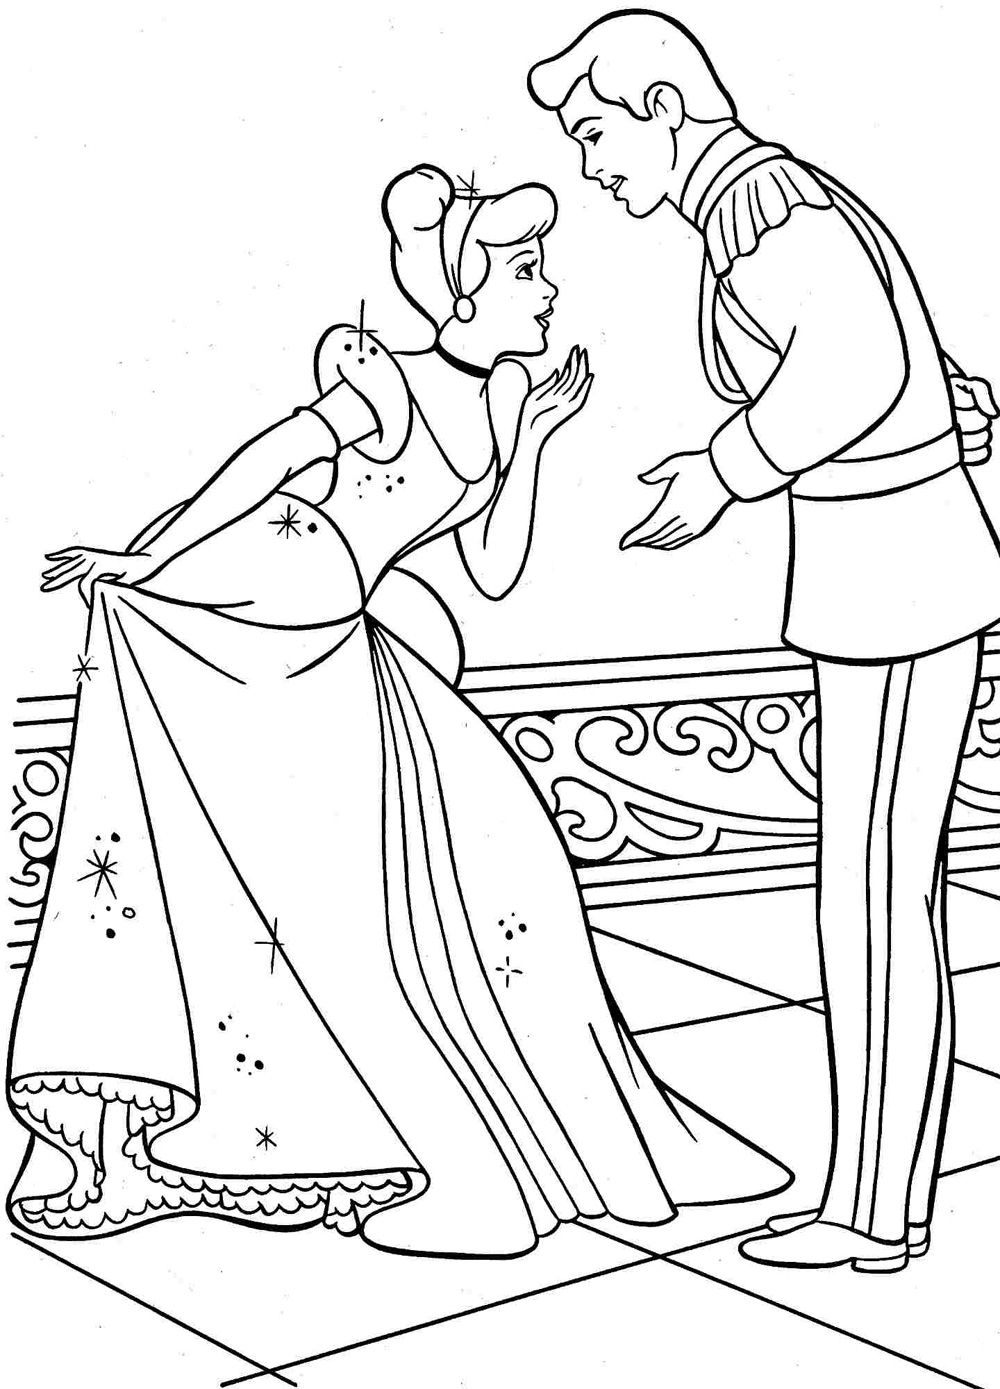 Cinderella Coloring Pages To Print Disney Princess Coloring Pages Cinderella Coloring Pages Princess Coloring Pages